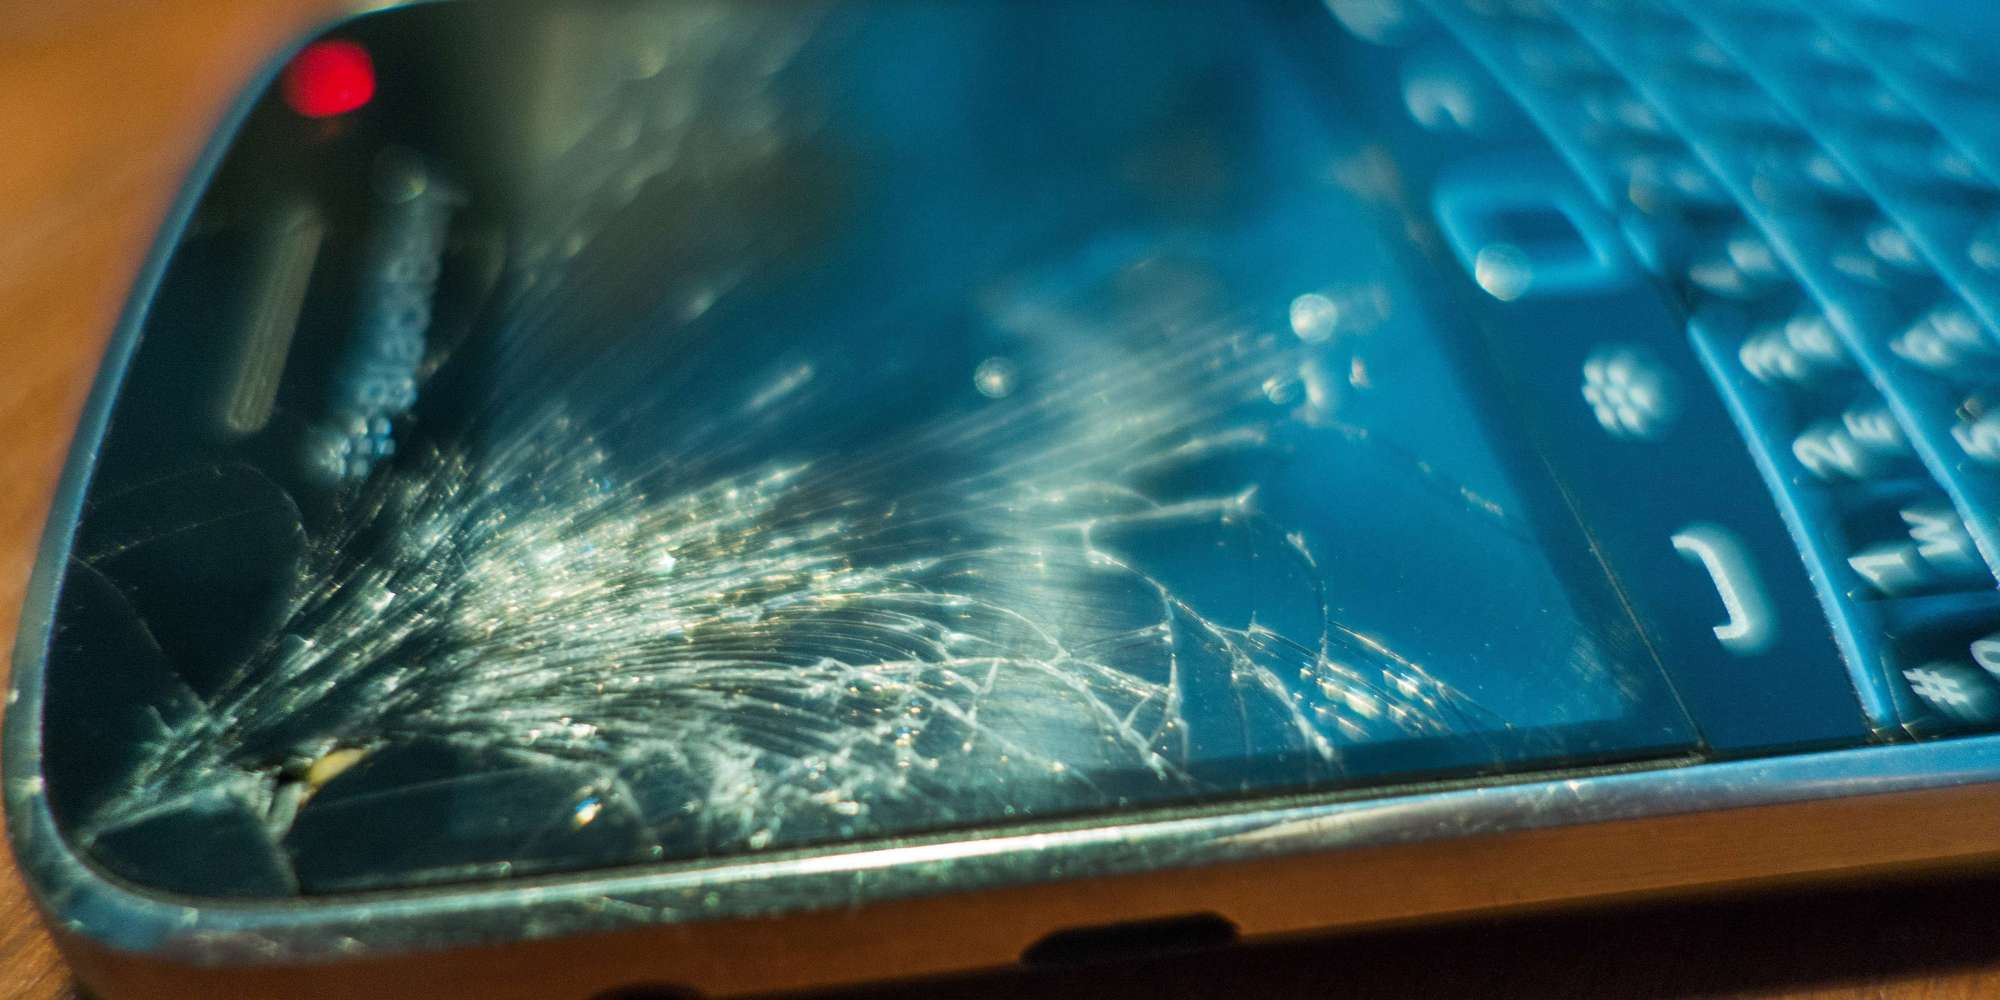 Best ideas about How To Fix A Cracked Phone Screen DIY . Save or Pin 4 Ways To Fix A Cracked Phone Screen Now.